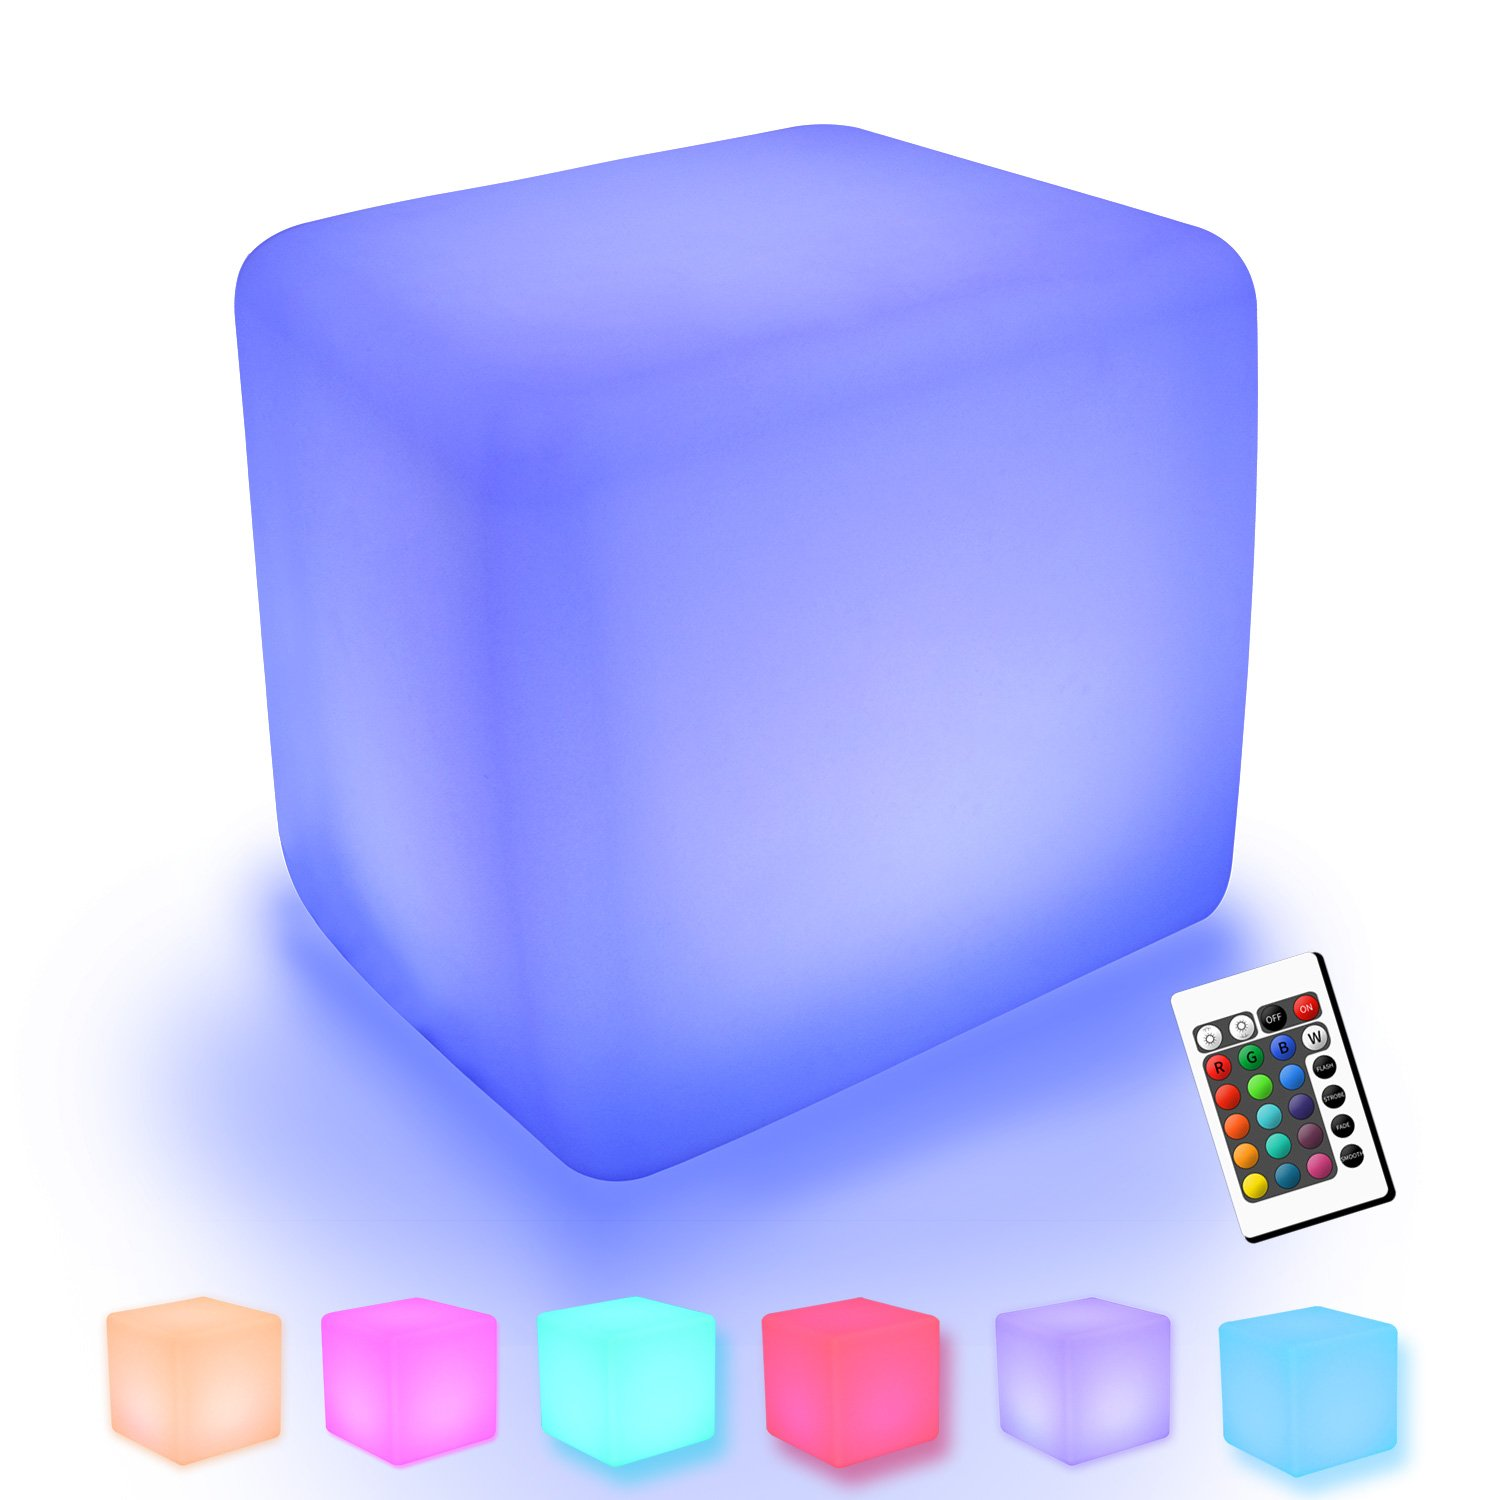 YUMEITECH Outdoor Indoor RGB Color Changing 16'' LED Cube Lights with Remote Control ,Rechargeable,Mood Lamp ,Waterproof,Glowing Furniture , Living Garden Light Décor